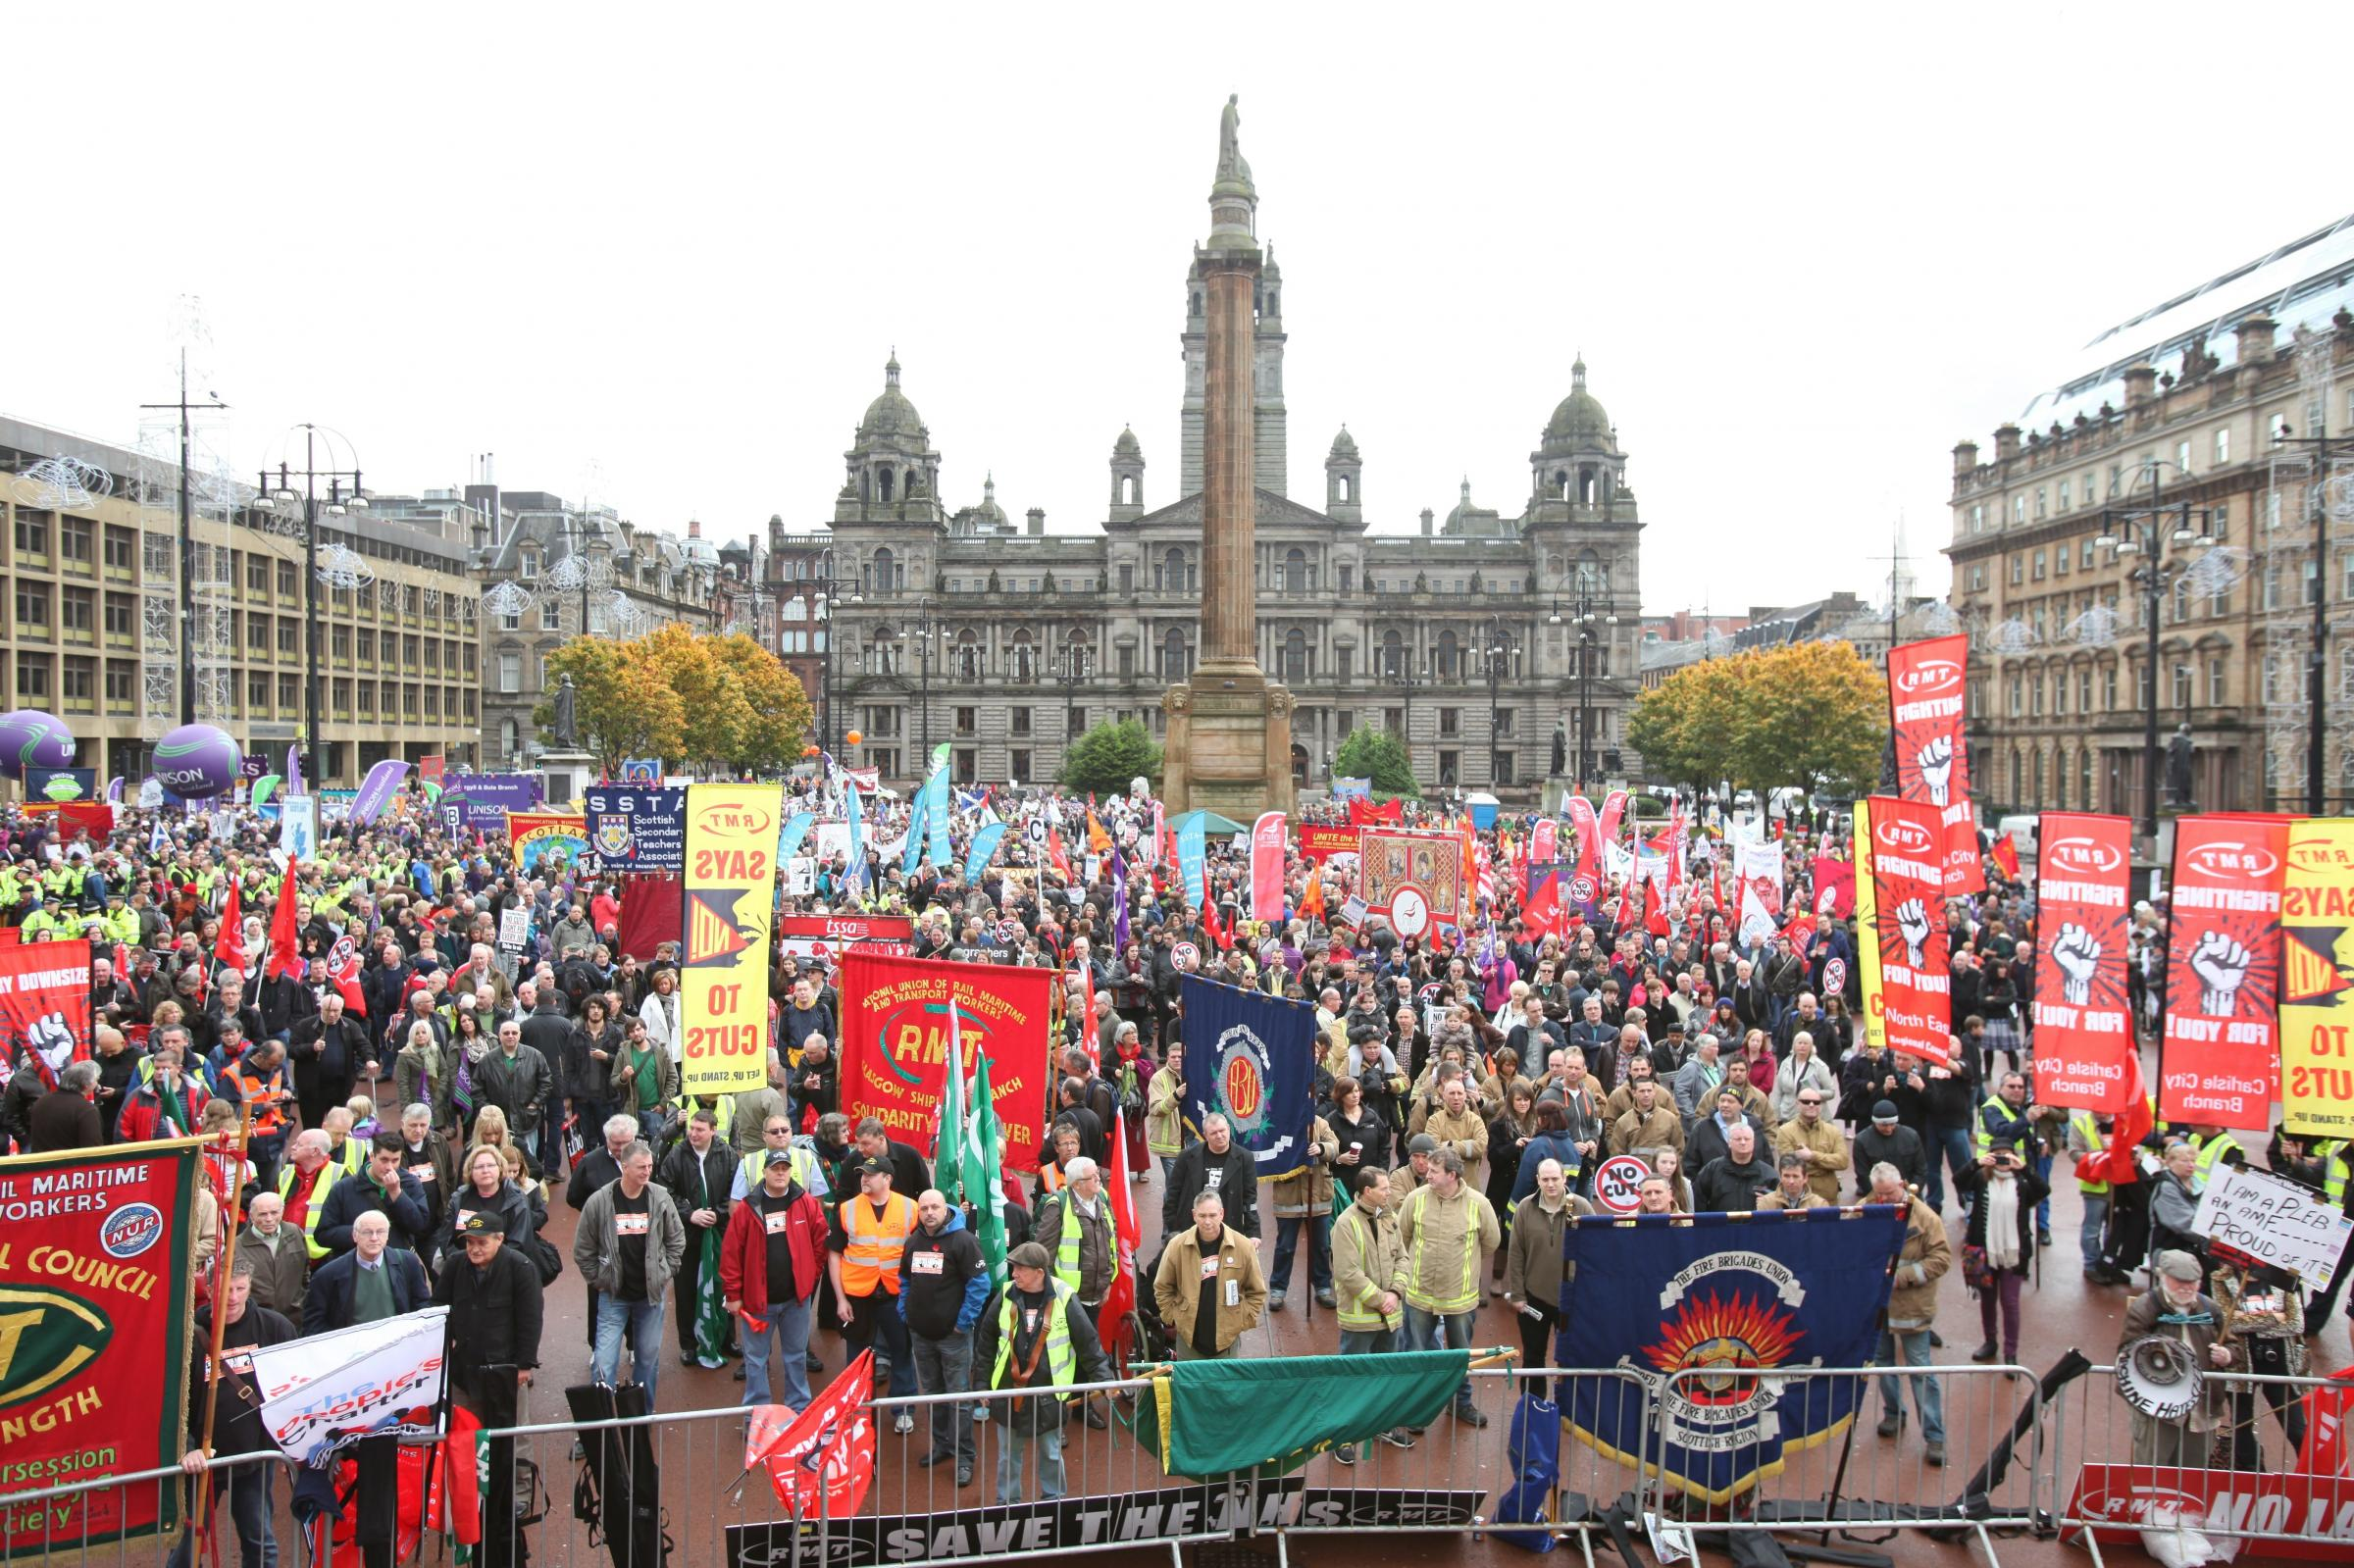 Councils find it too easy to listen to the trade union case and then ignore it